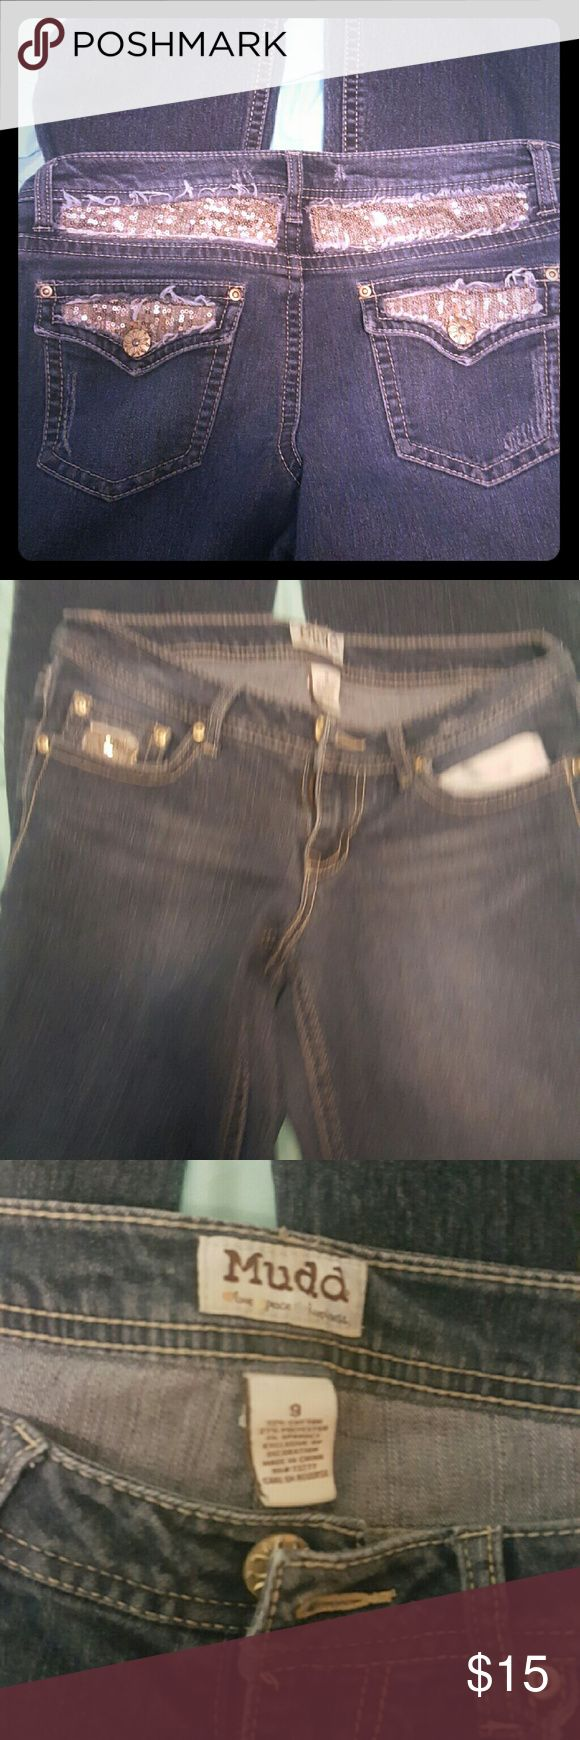 Mudd sequin jeans Size 9 gold sequin Mudd jeans mudd Jeans Boot Cut